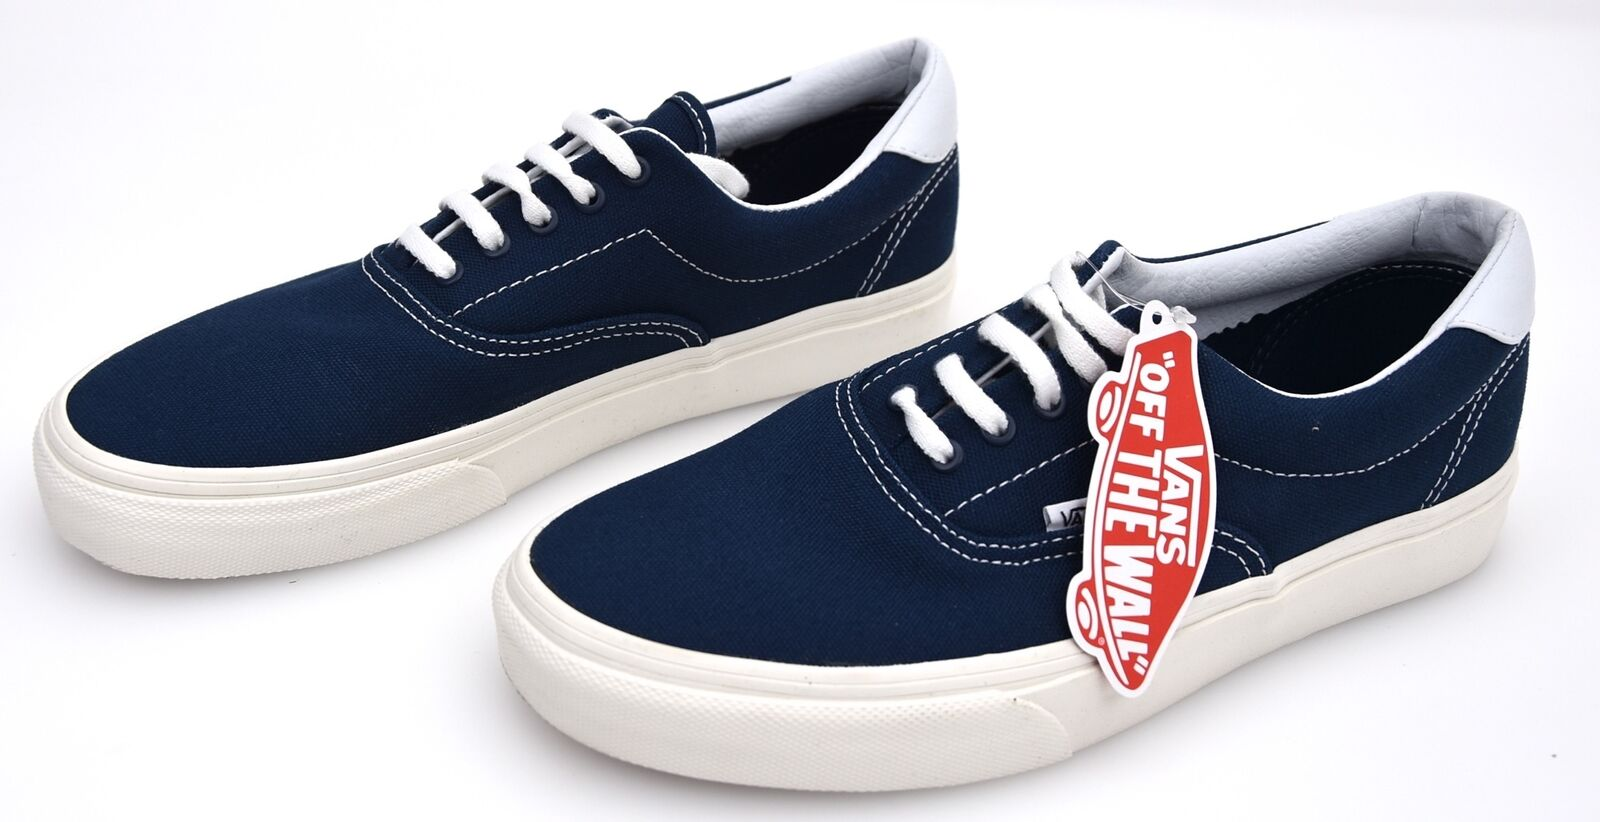 VANS MAN baskets chaussures CASUAL FREE TIME CANVAS CODE ERA 59 VN-0 ZMSF64